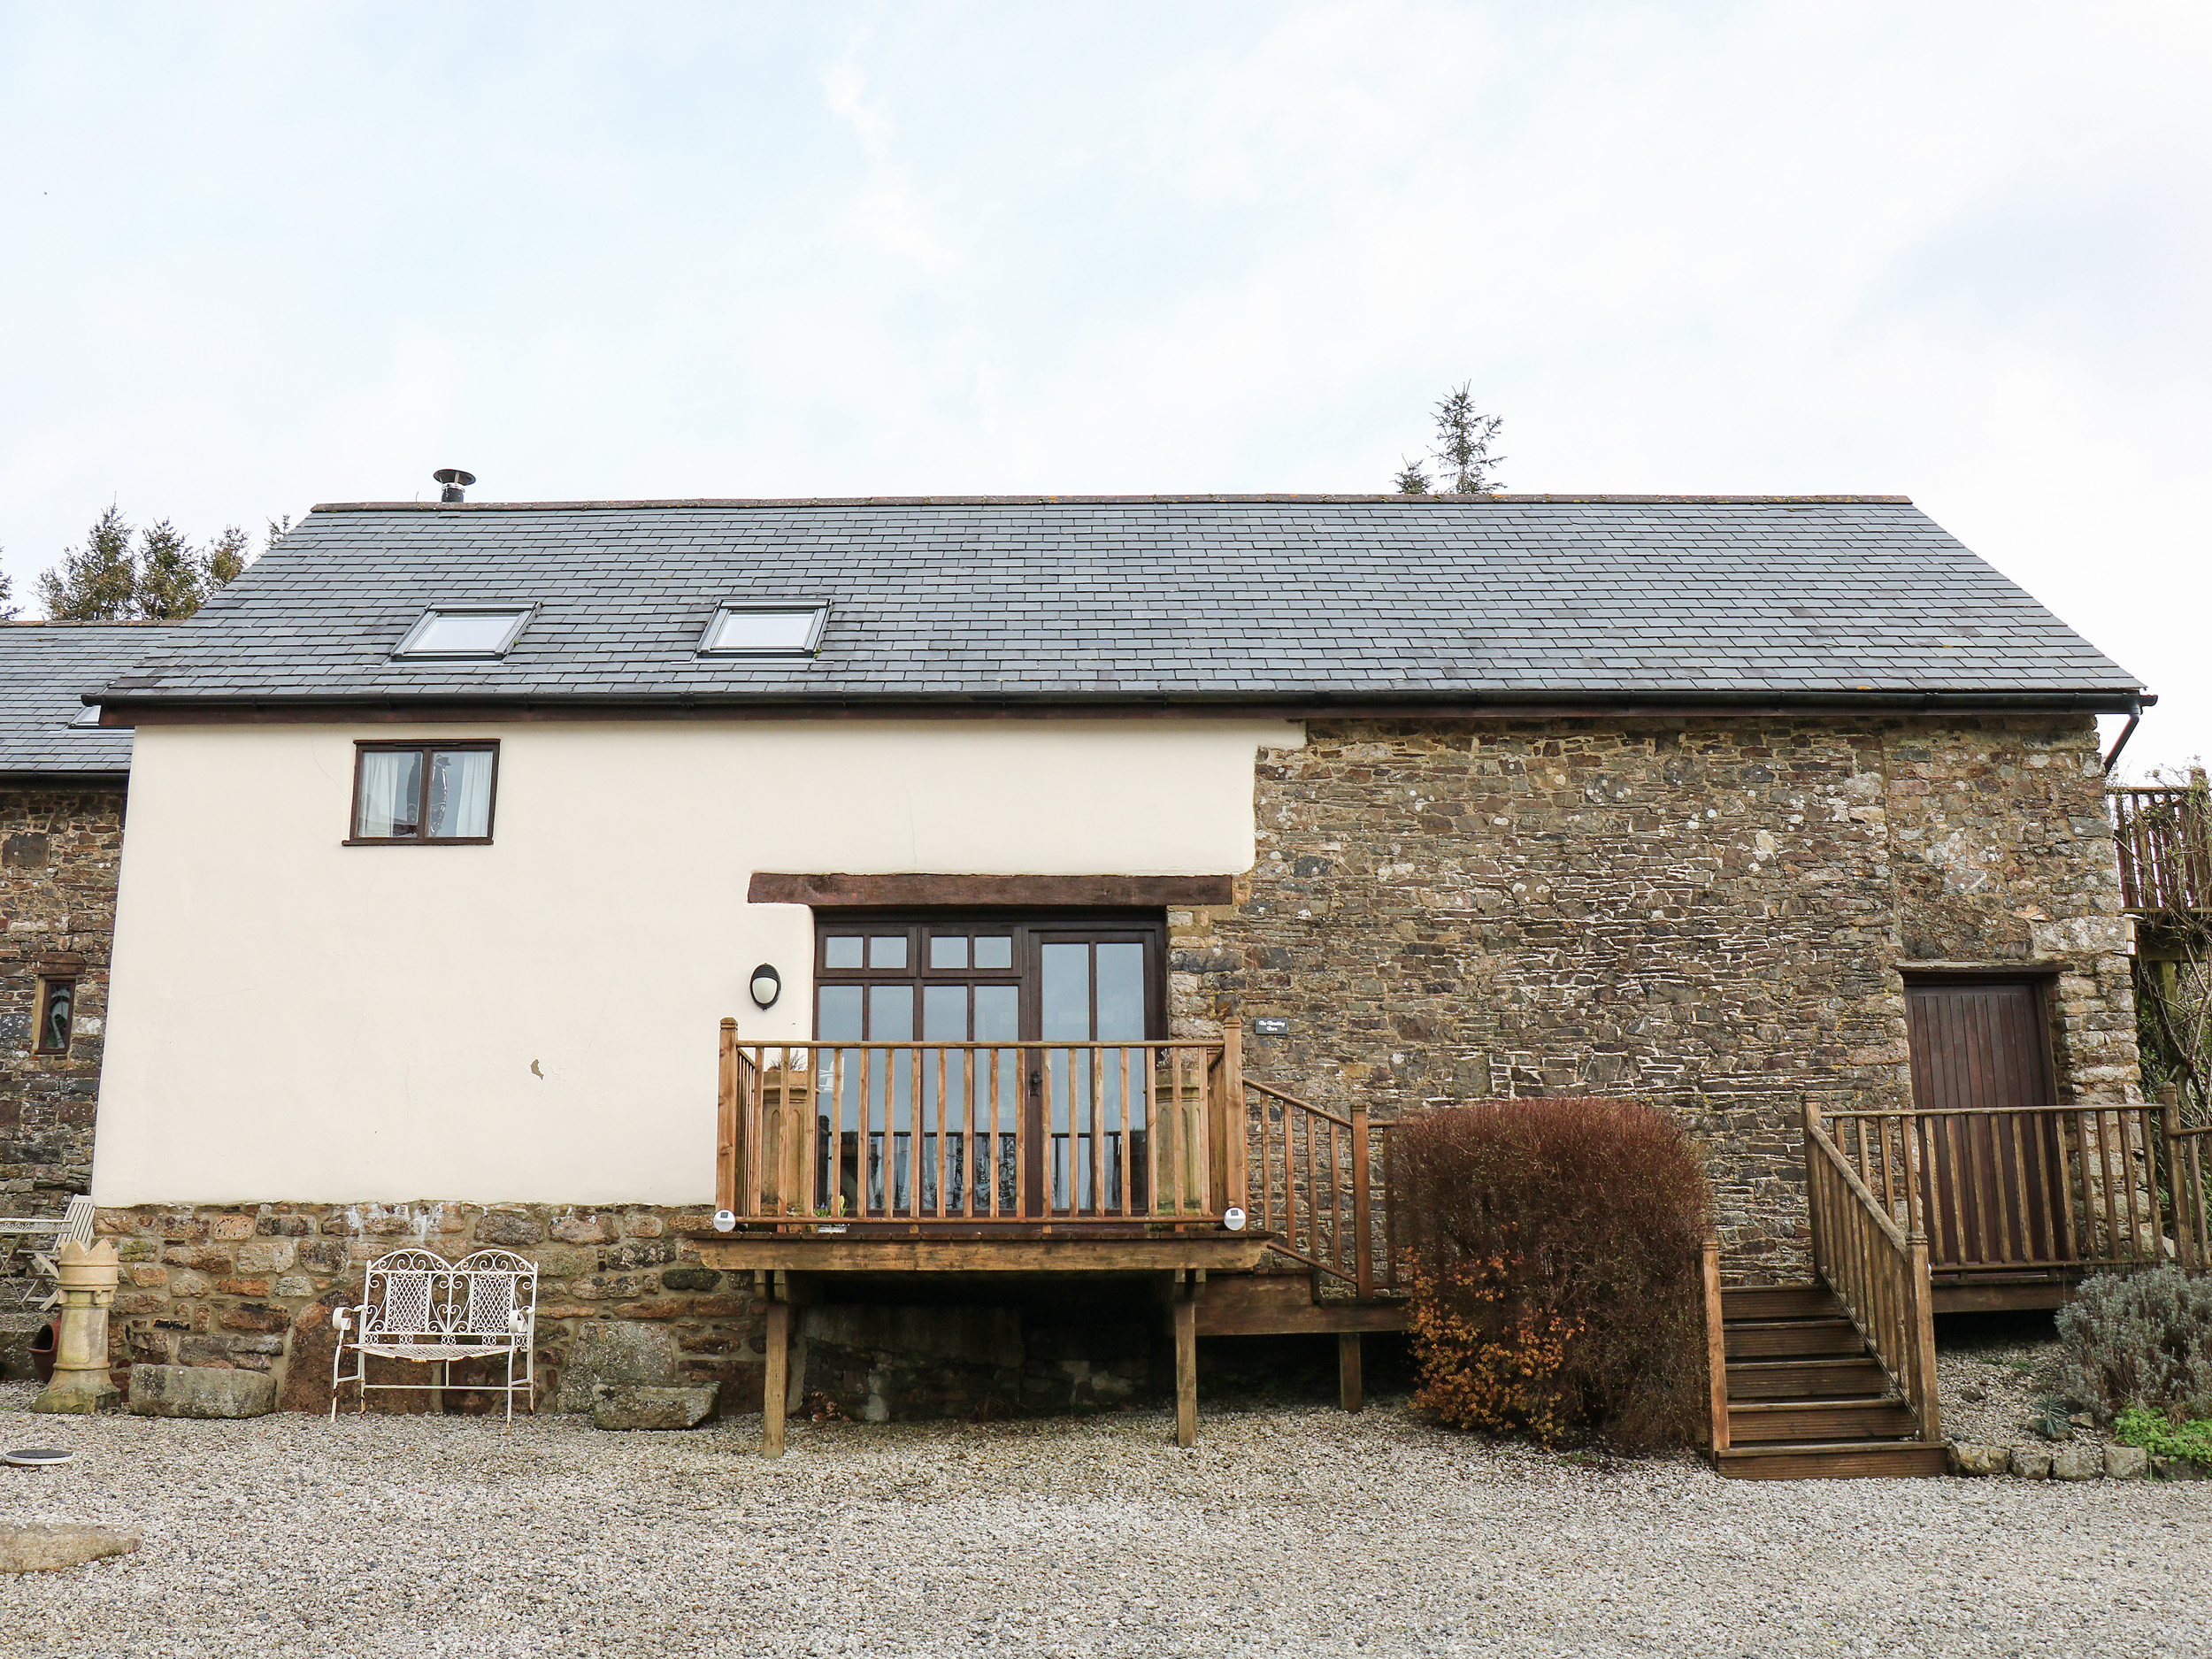 1 bedroom Cottage for rent in Okehampton